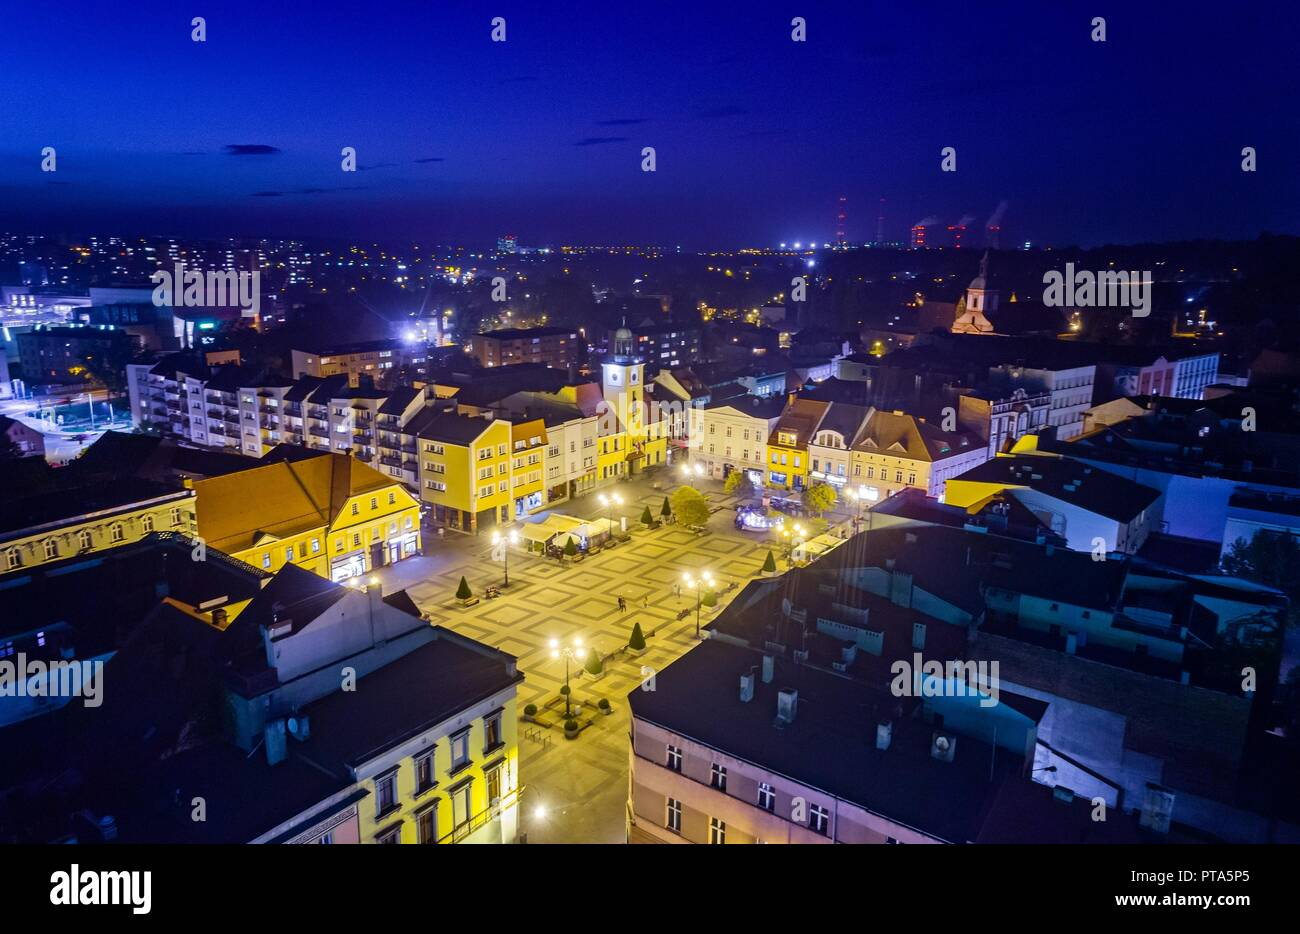 Aerial drone view Rybnik main square at night. Rybnik is a city in southwestern Poland, in the Silesian Voivodeship. - Stock Image